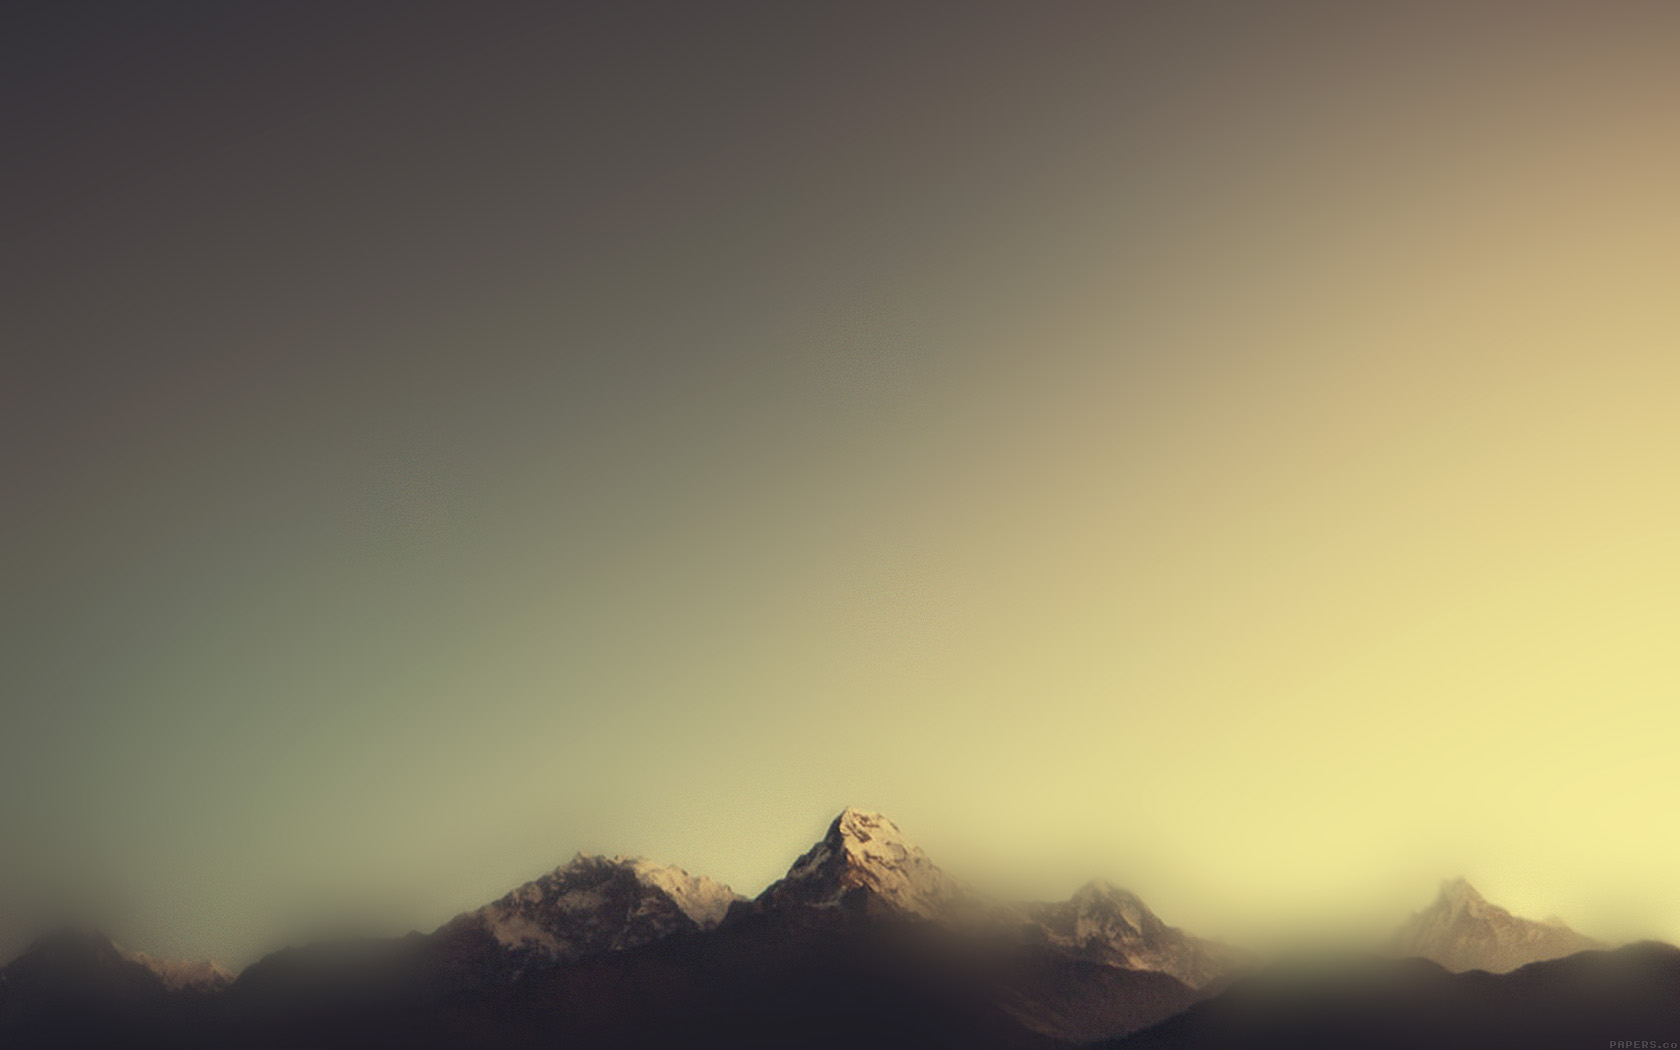 Simple Fall Hd Wallpaper Ml07 Mountain Blur Minimal Nature Papers Co